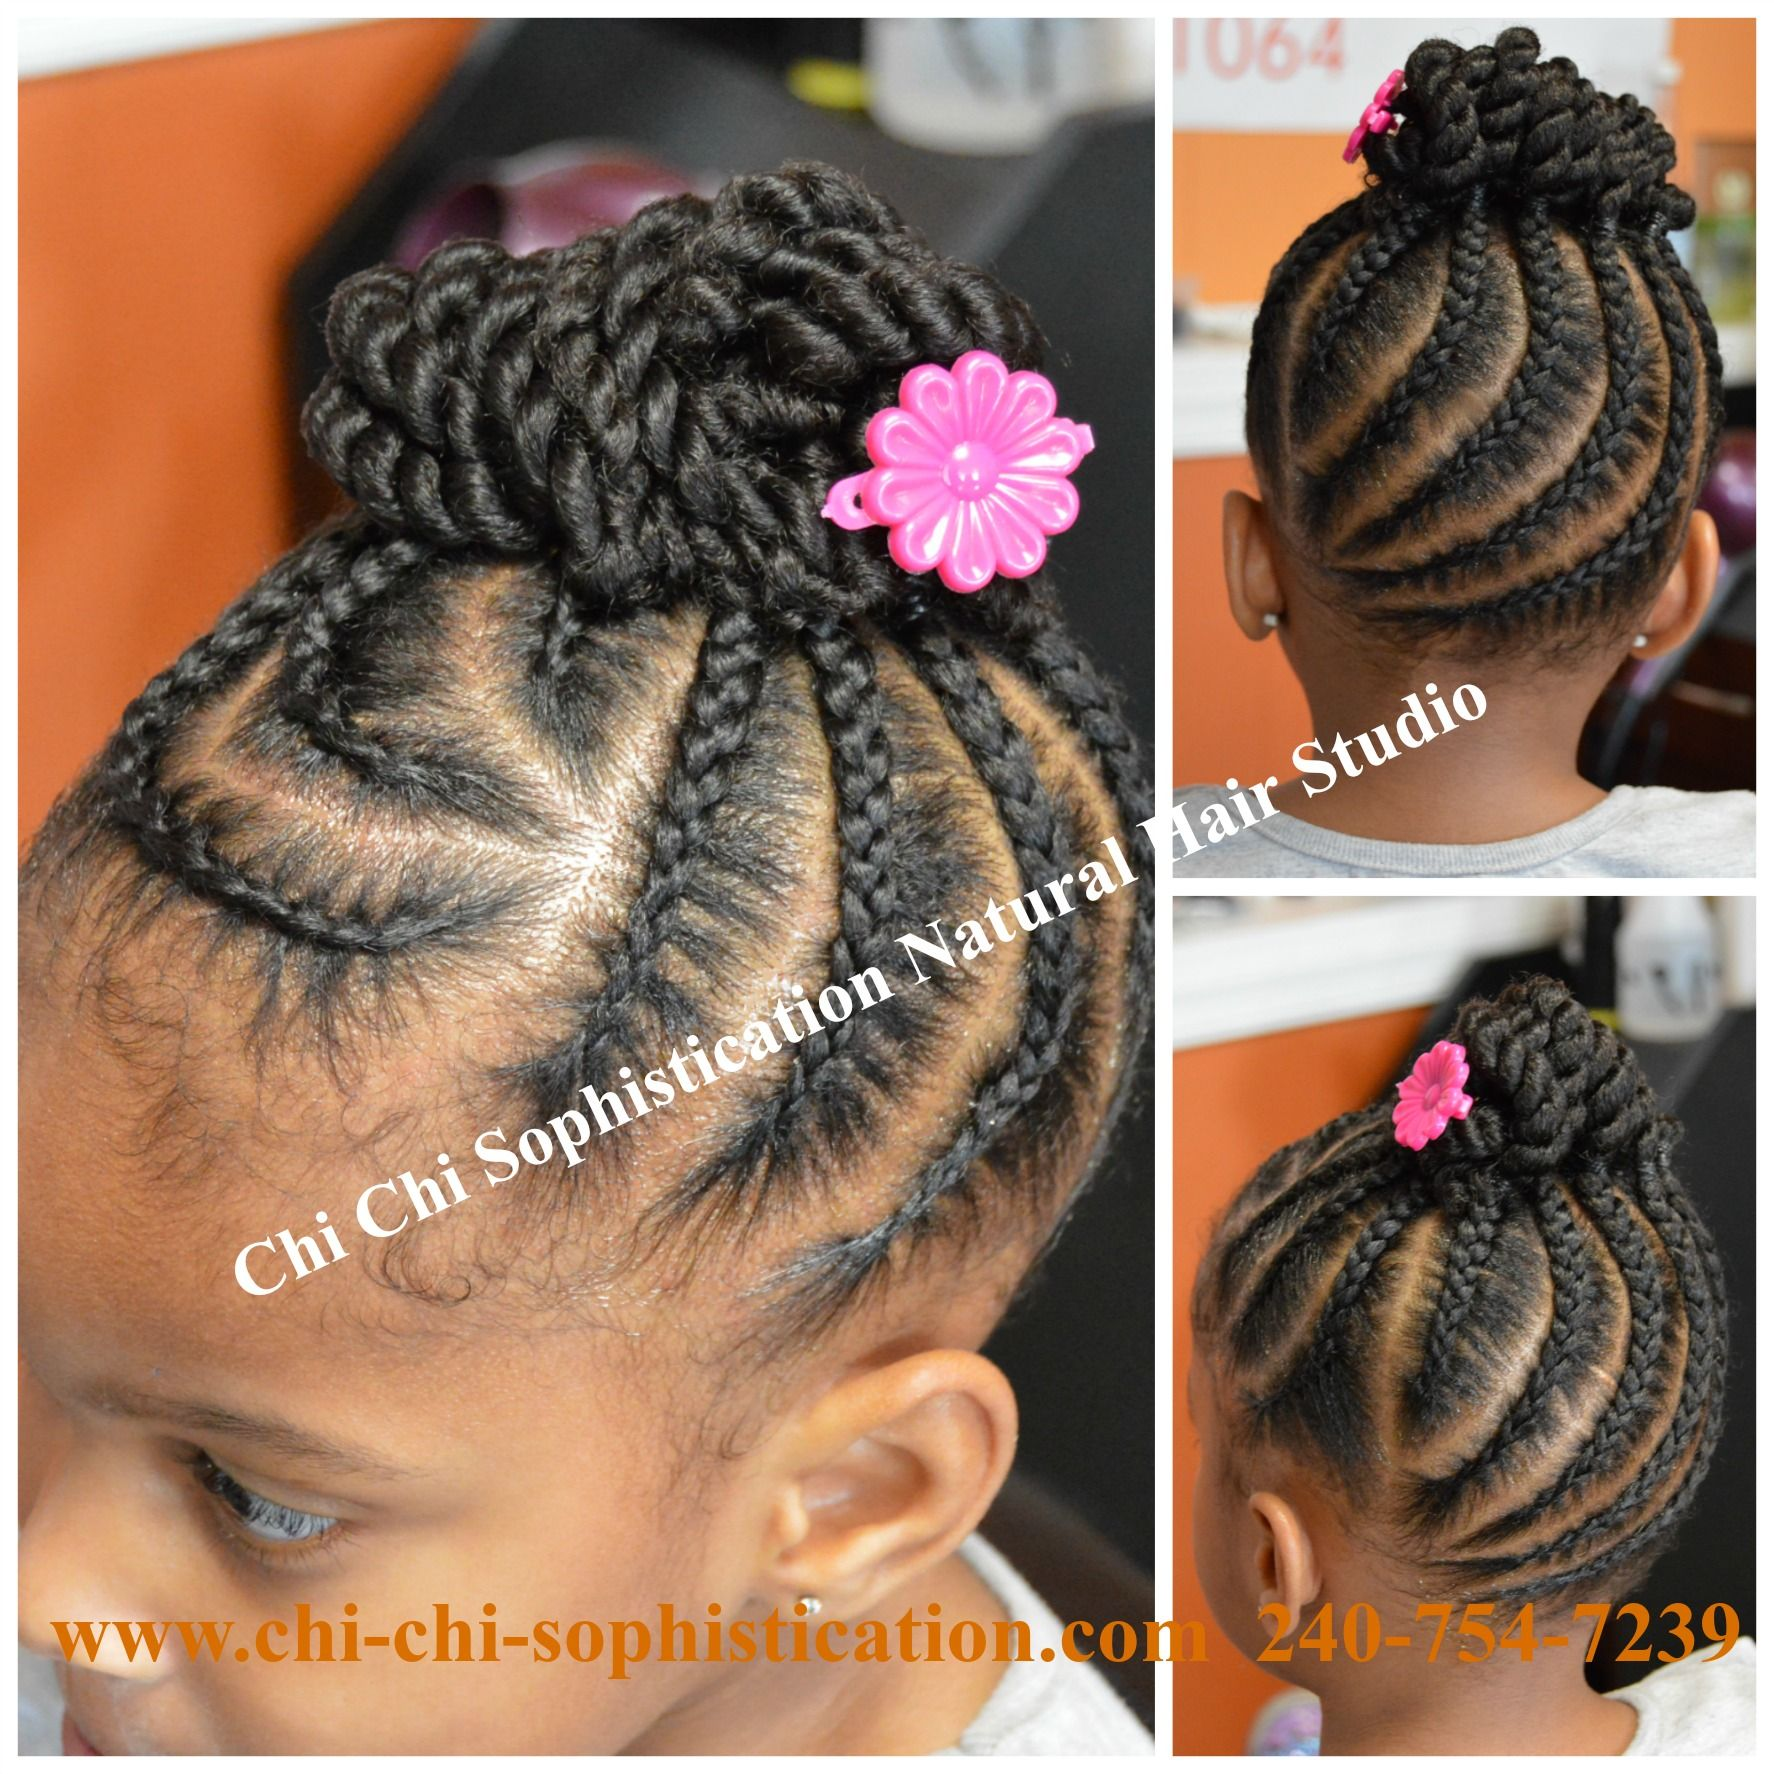 cornrows & twist bun for children. #naturalhair #texturedhair